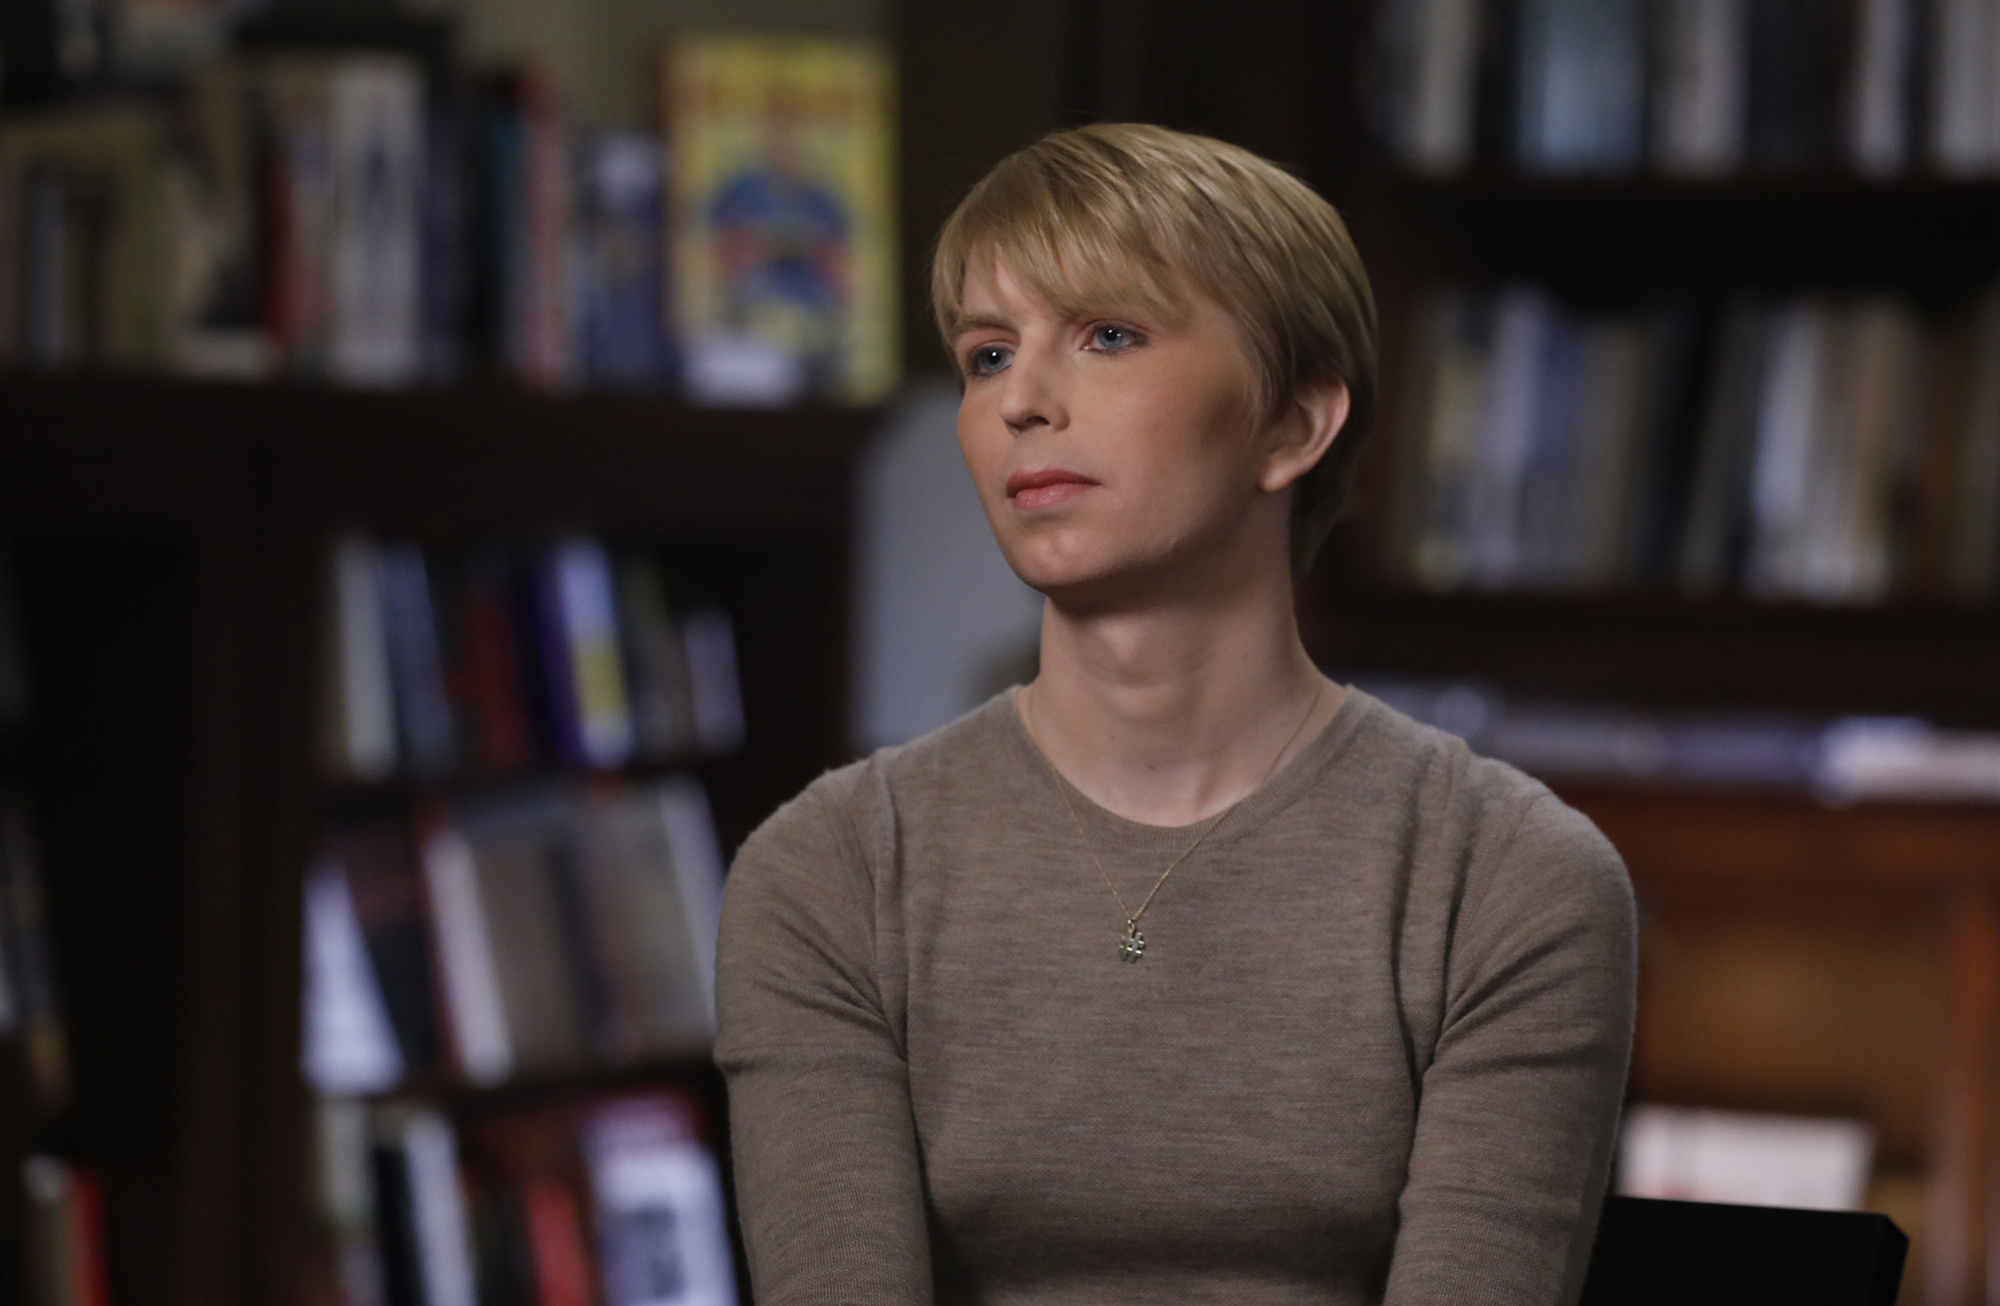 ABC NEWS - ABC News'  Nightline  co-anchor Juju Chang sits down with Chelsea Manning for the first exclusive television interview since Manning's prison release. June 08, 2017